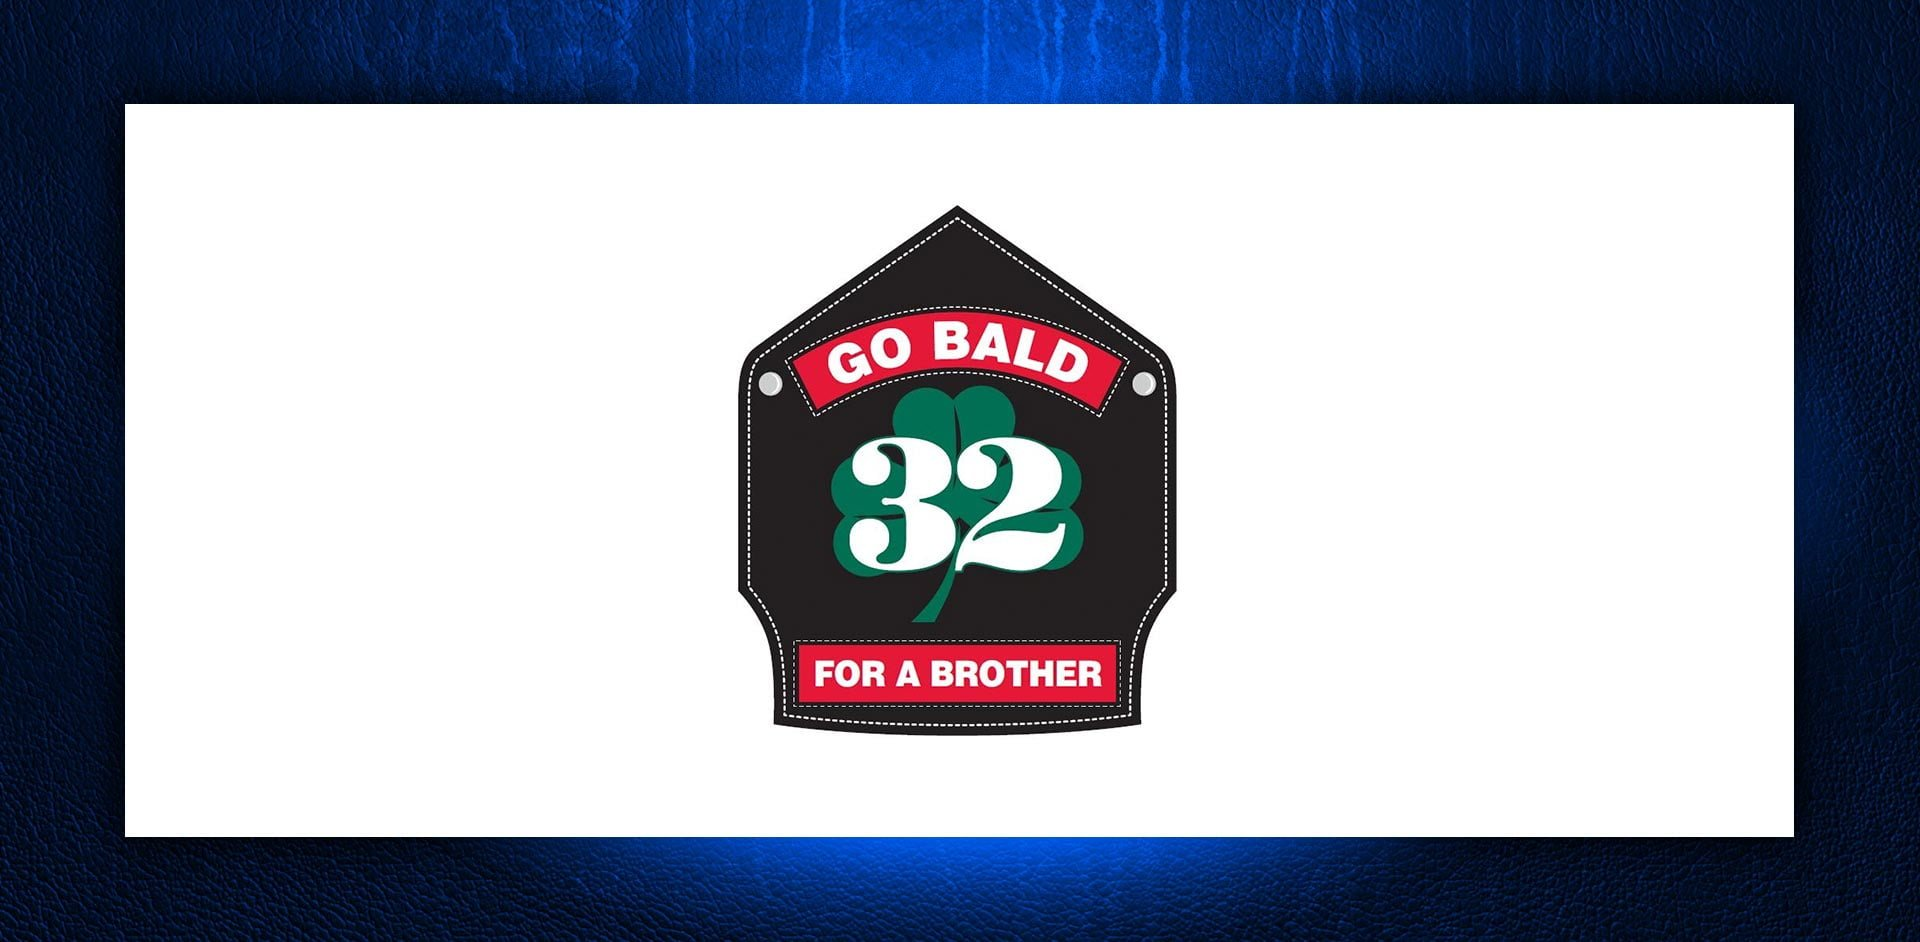 Go Bald For A Brother